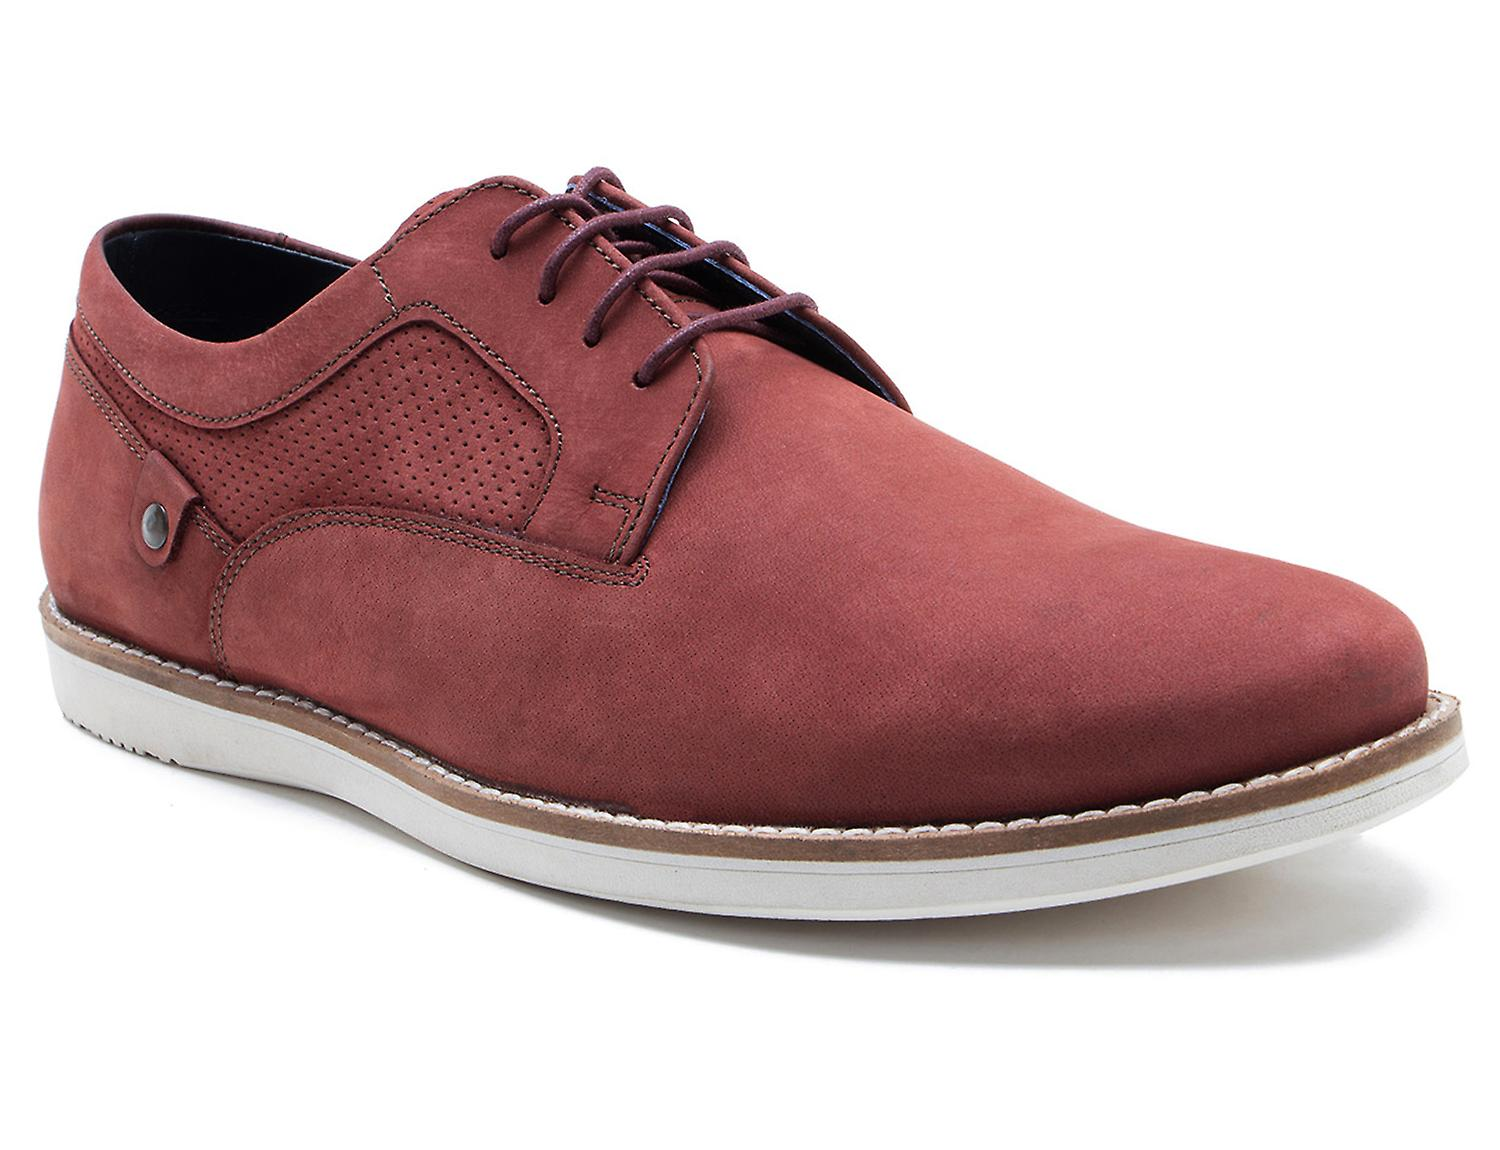 La paperasserie Holker Mens Oxblood Suede Casual chaussures lacées